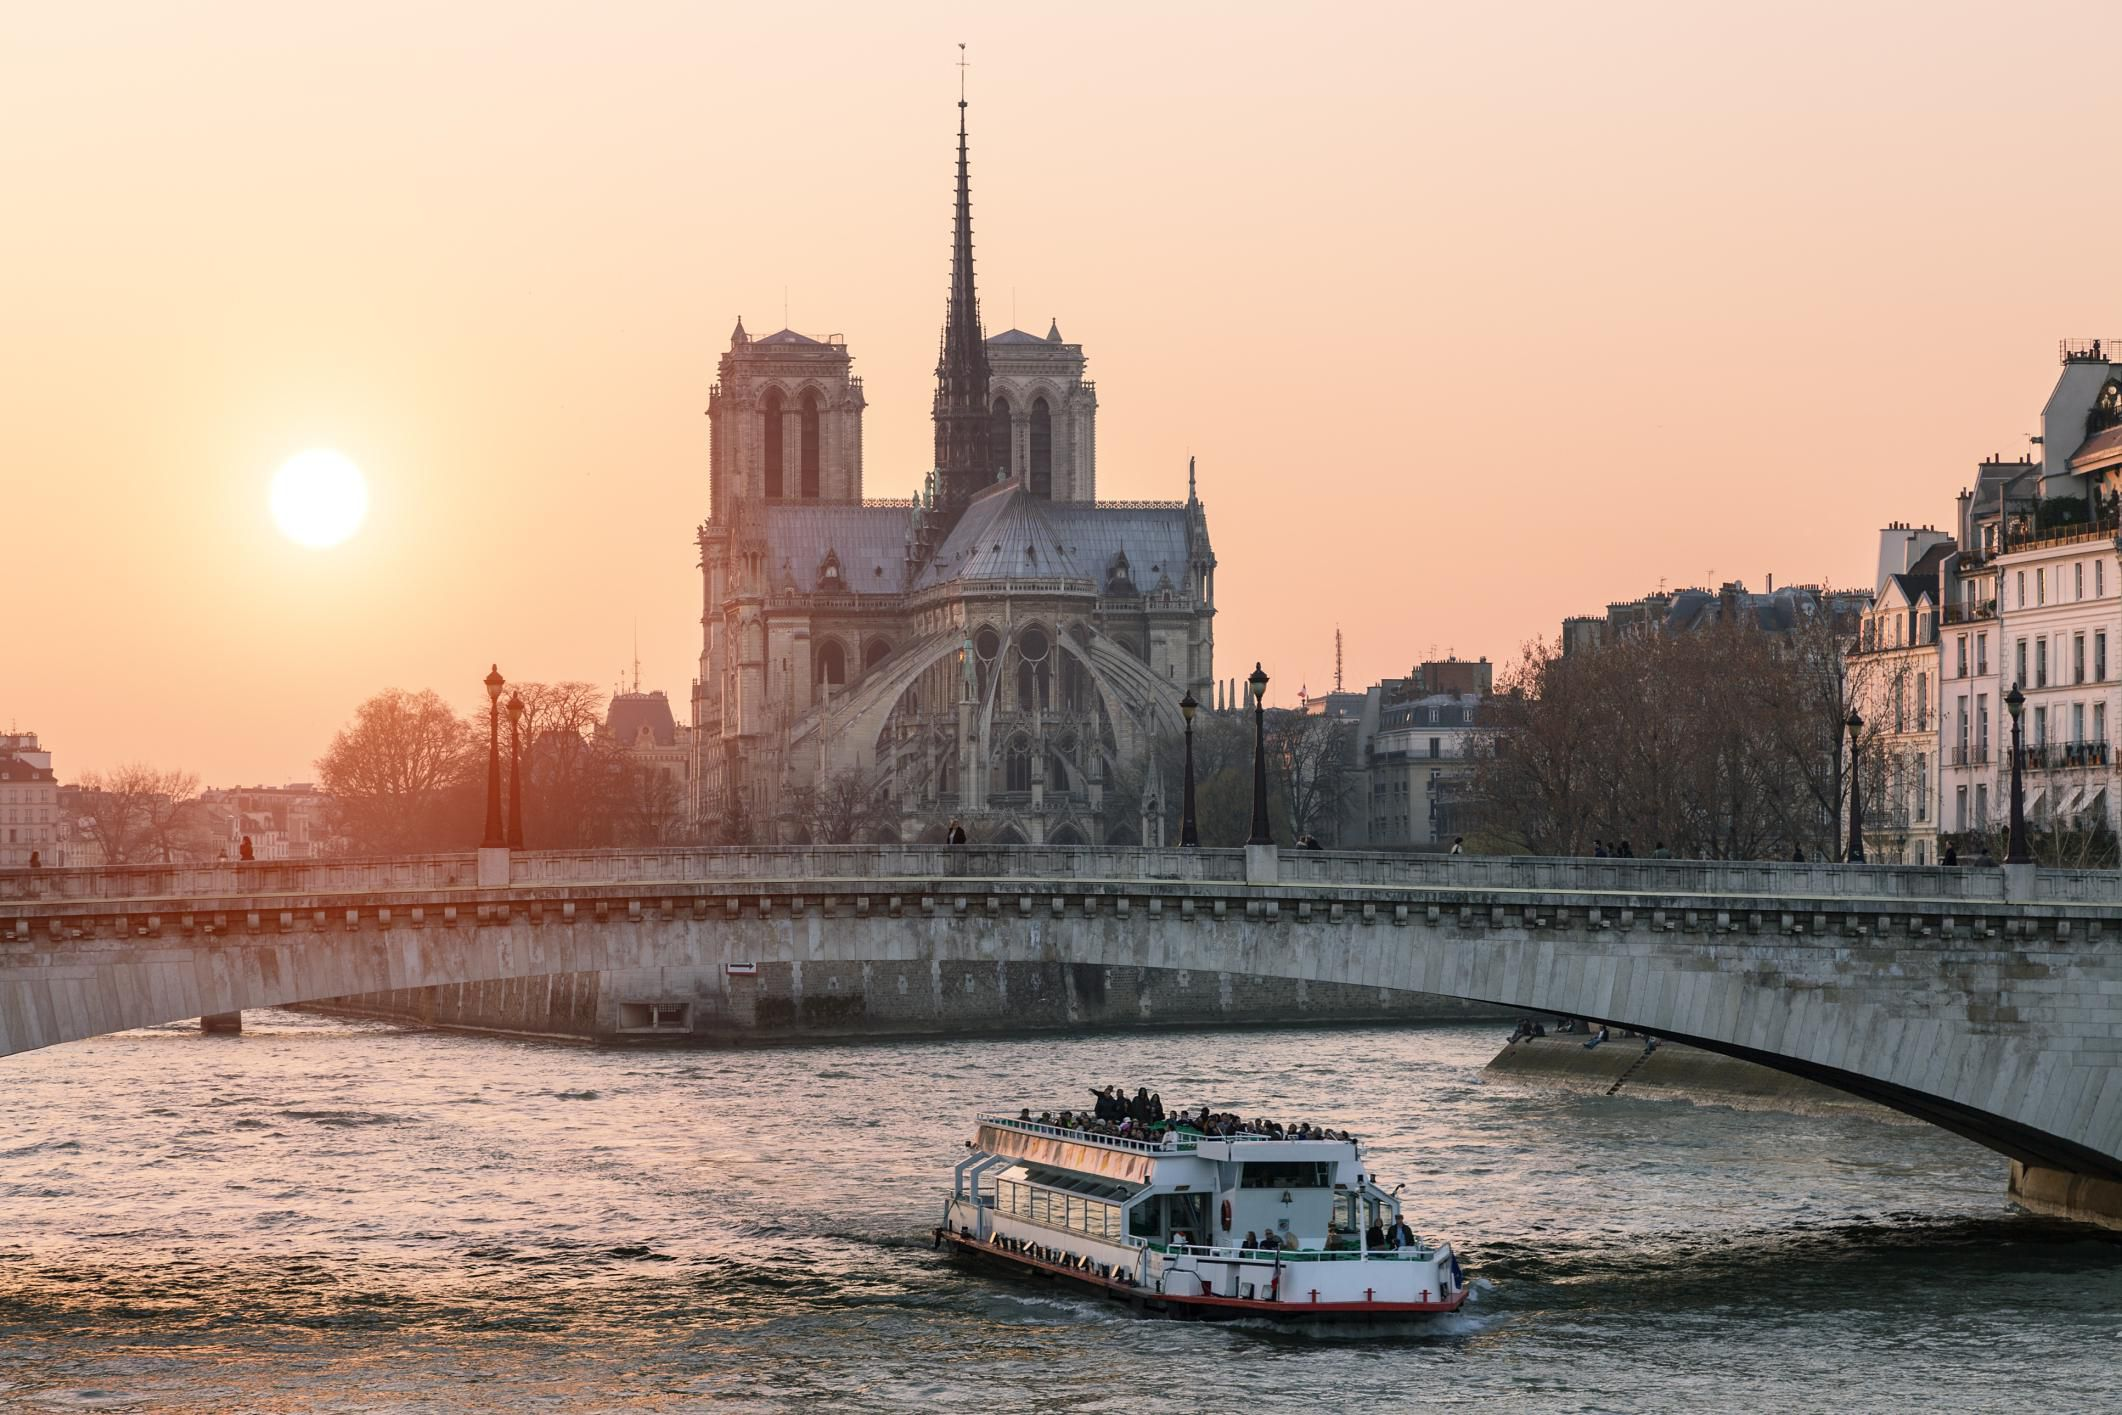 Best Boat Tours of Paris: Find Your Perfect Seine River Cruise